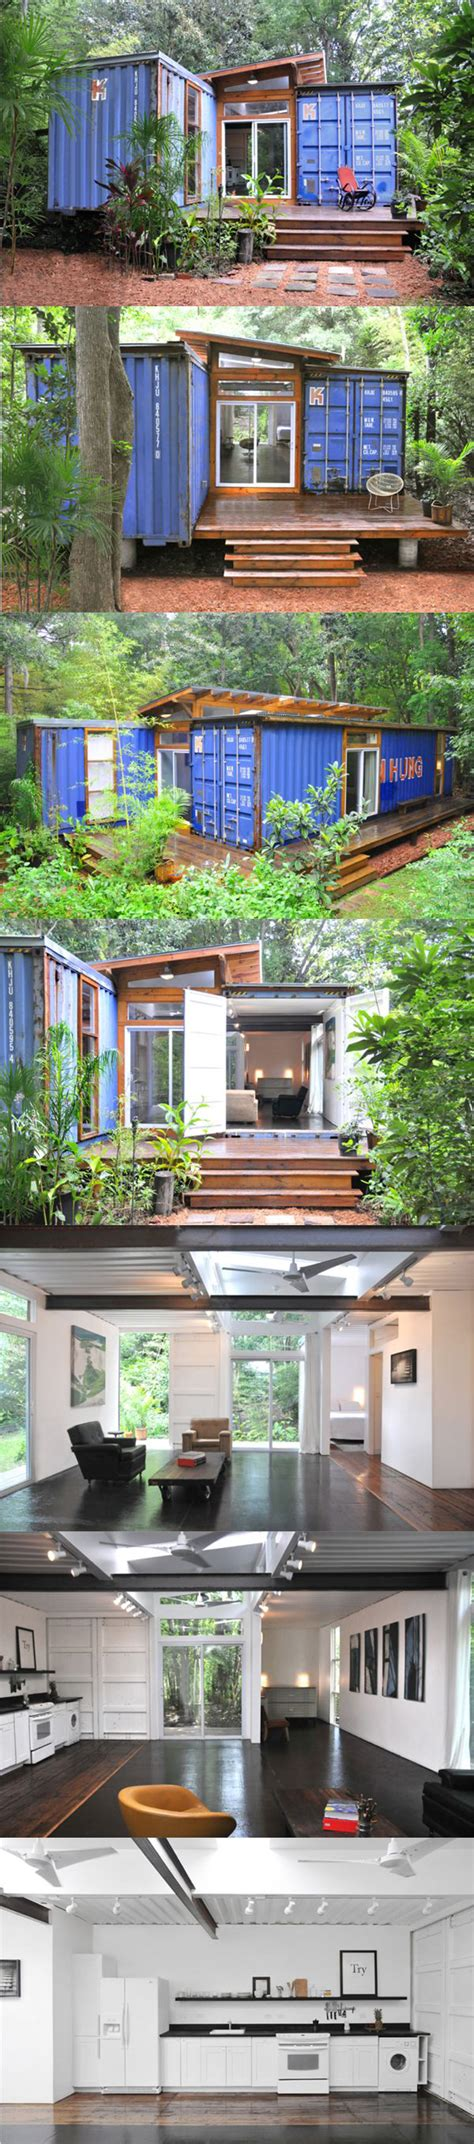 diy shipping container home plans inside and outside of a beautiful shipping container home